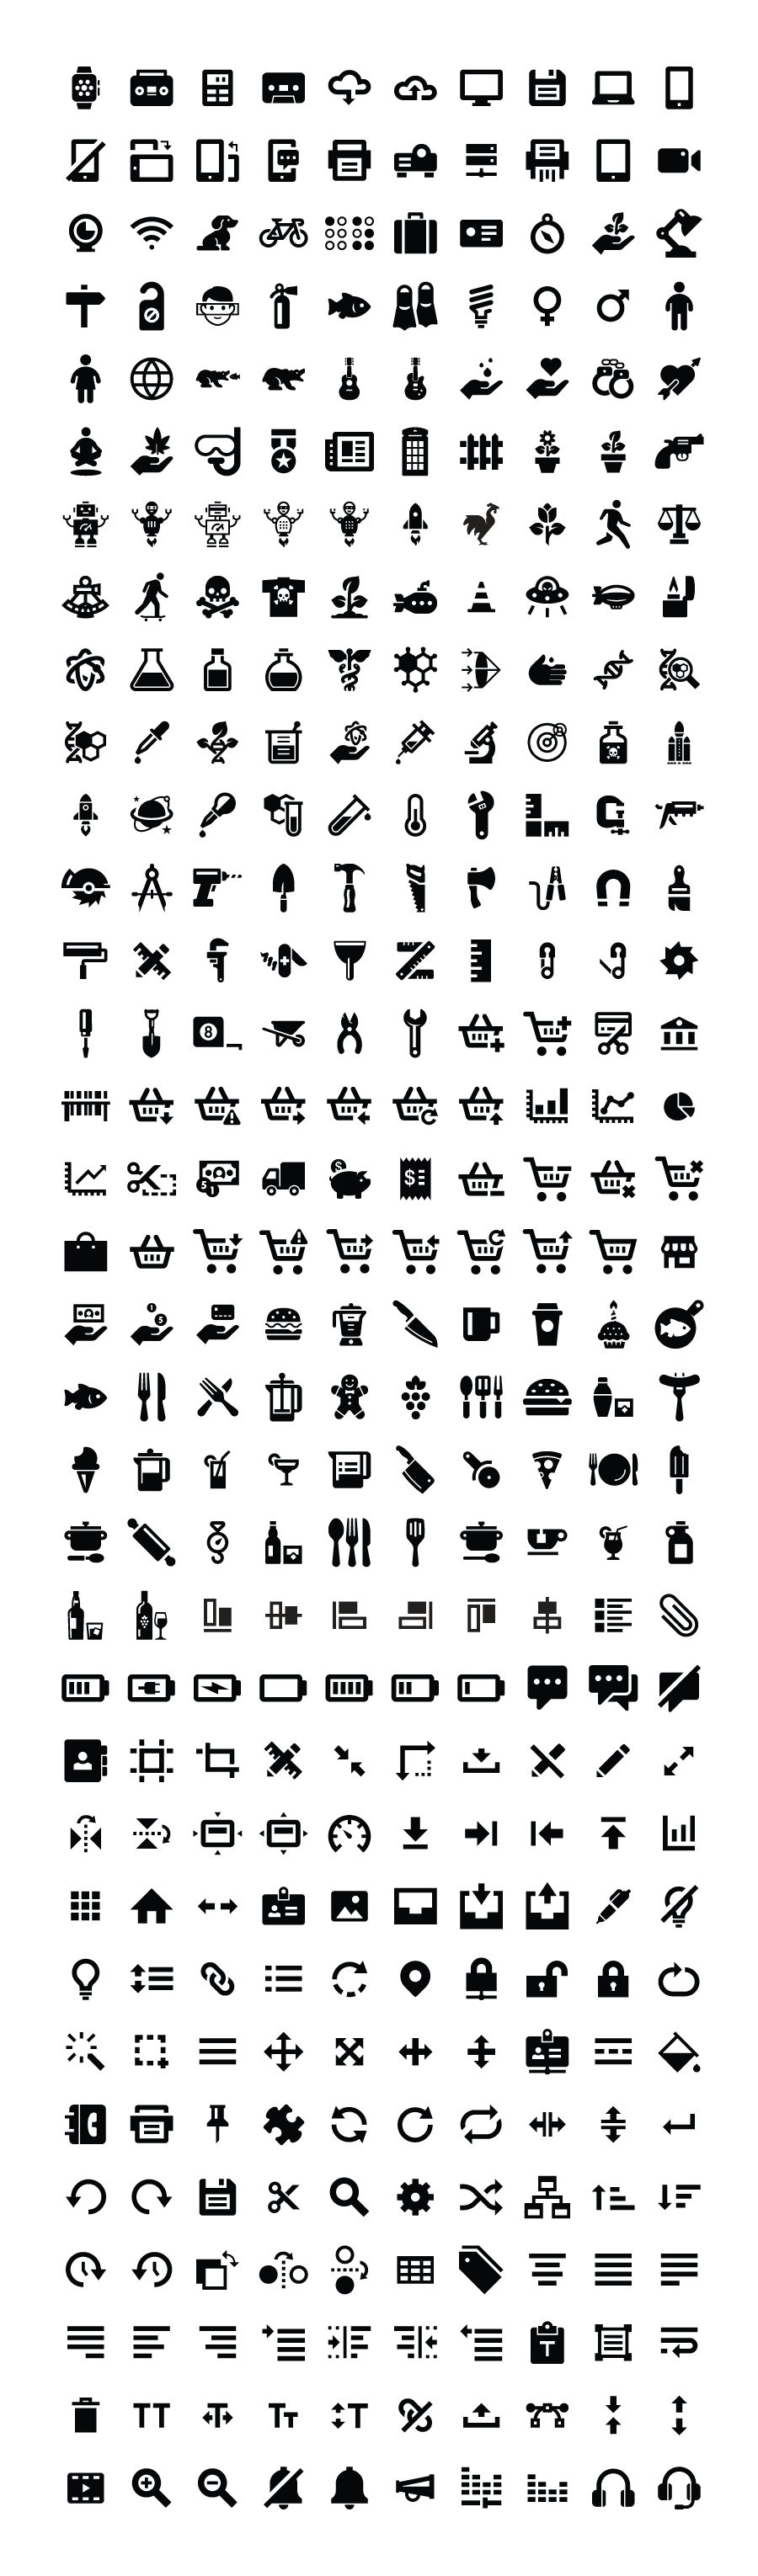 650 Free Glyph Icon Pack